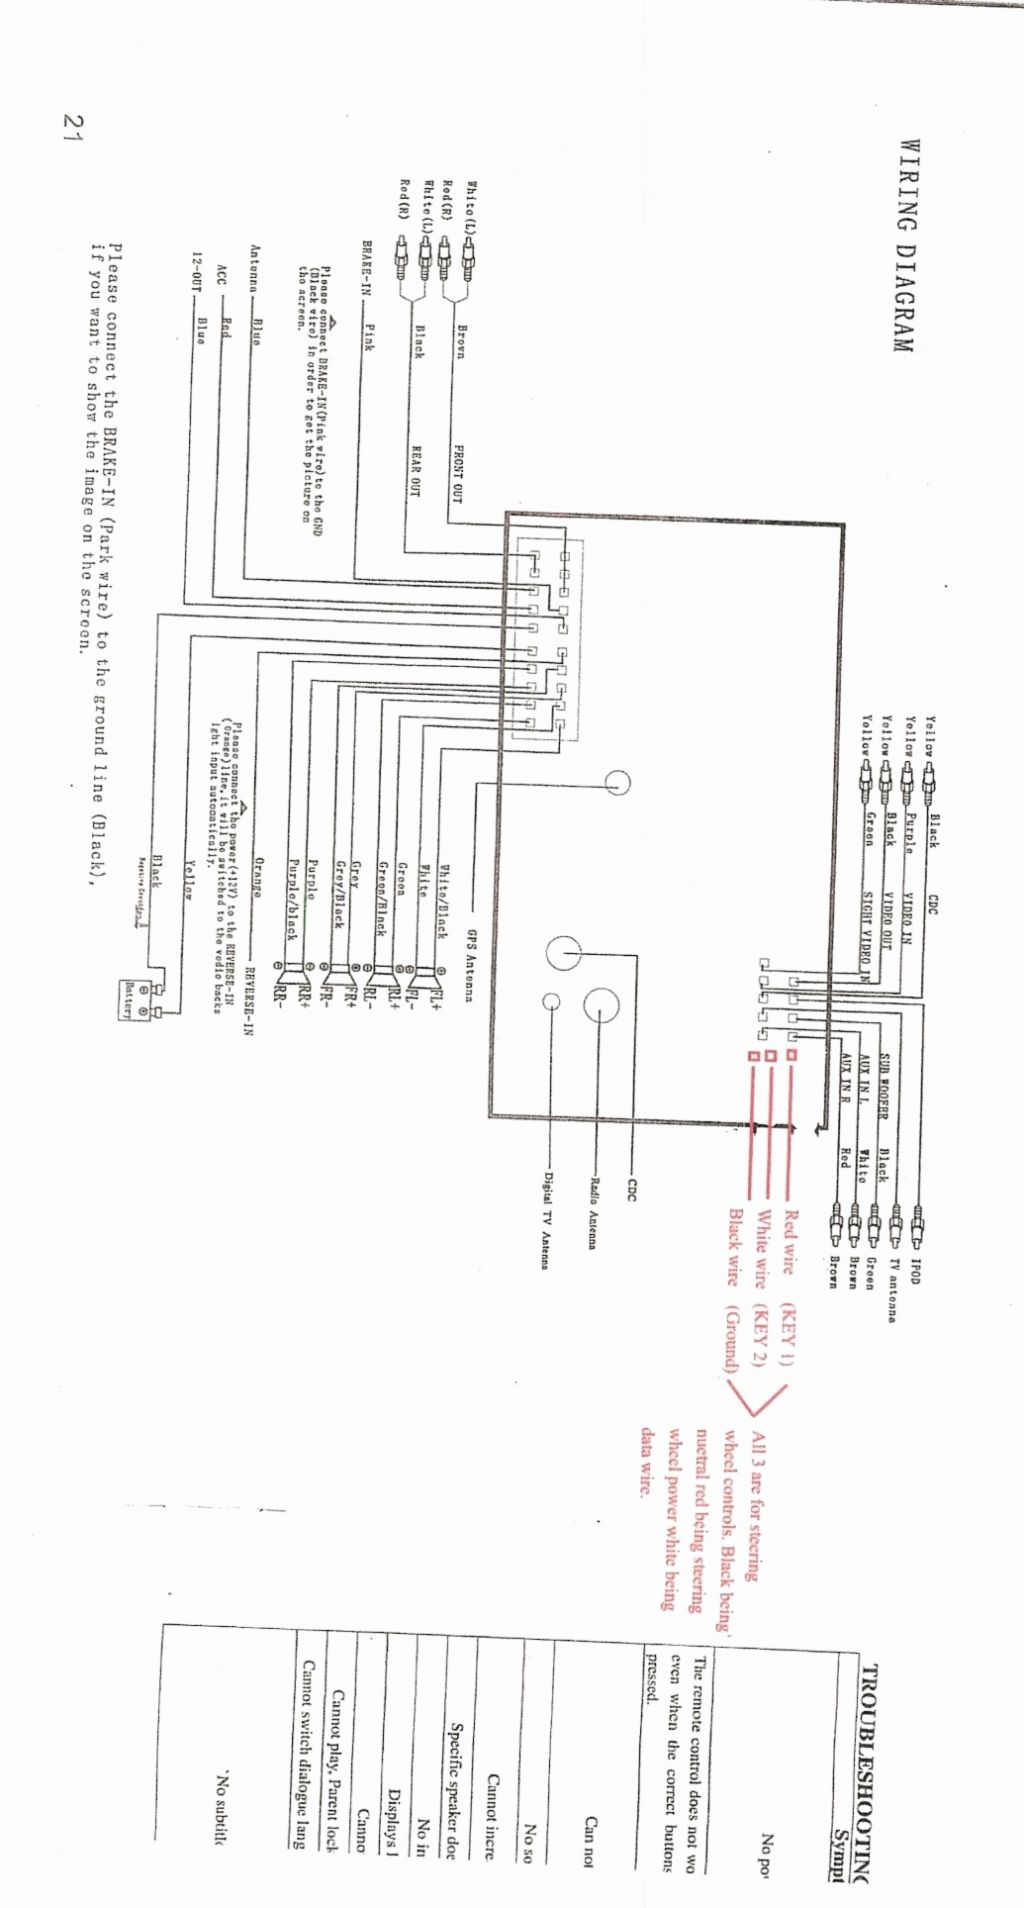 hight resolution of axxess steering wheel control interface wiring diagram axxess gmos 04 wiring diagram beautiful awesome gmos 01 wiring diagram s best for wiring 11o jpg